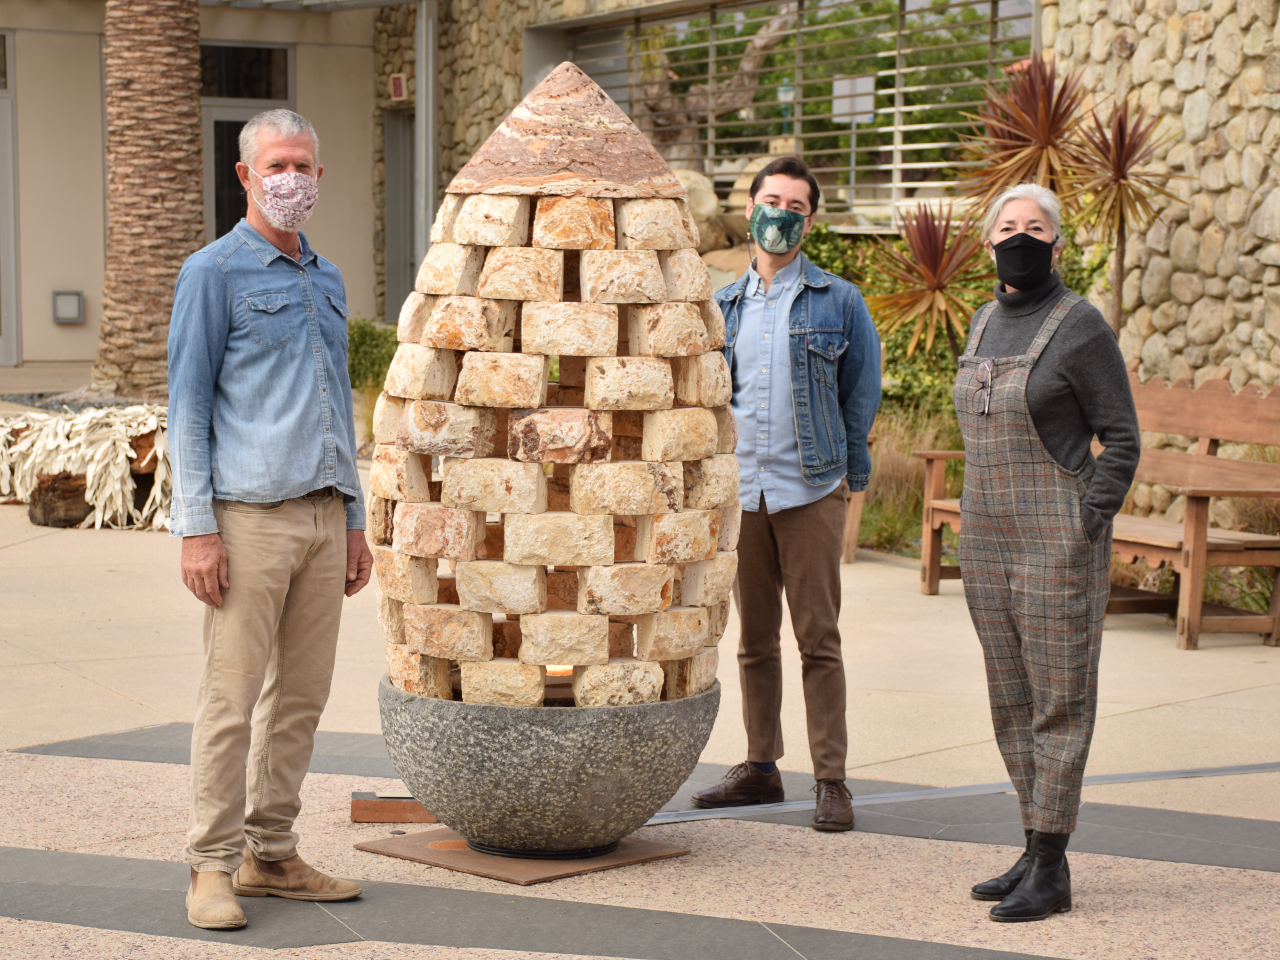 Kevin Carman's Acorn Lamp Sculpture is a Seed of Connection for Ventura's Art Scene